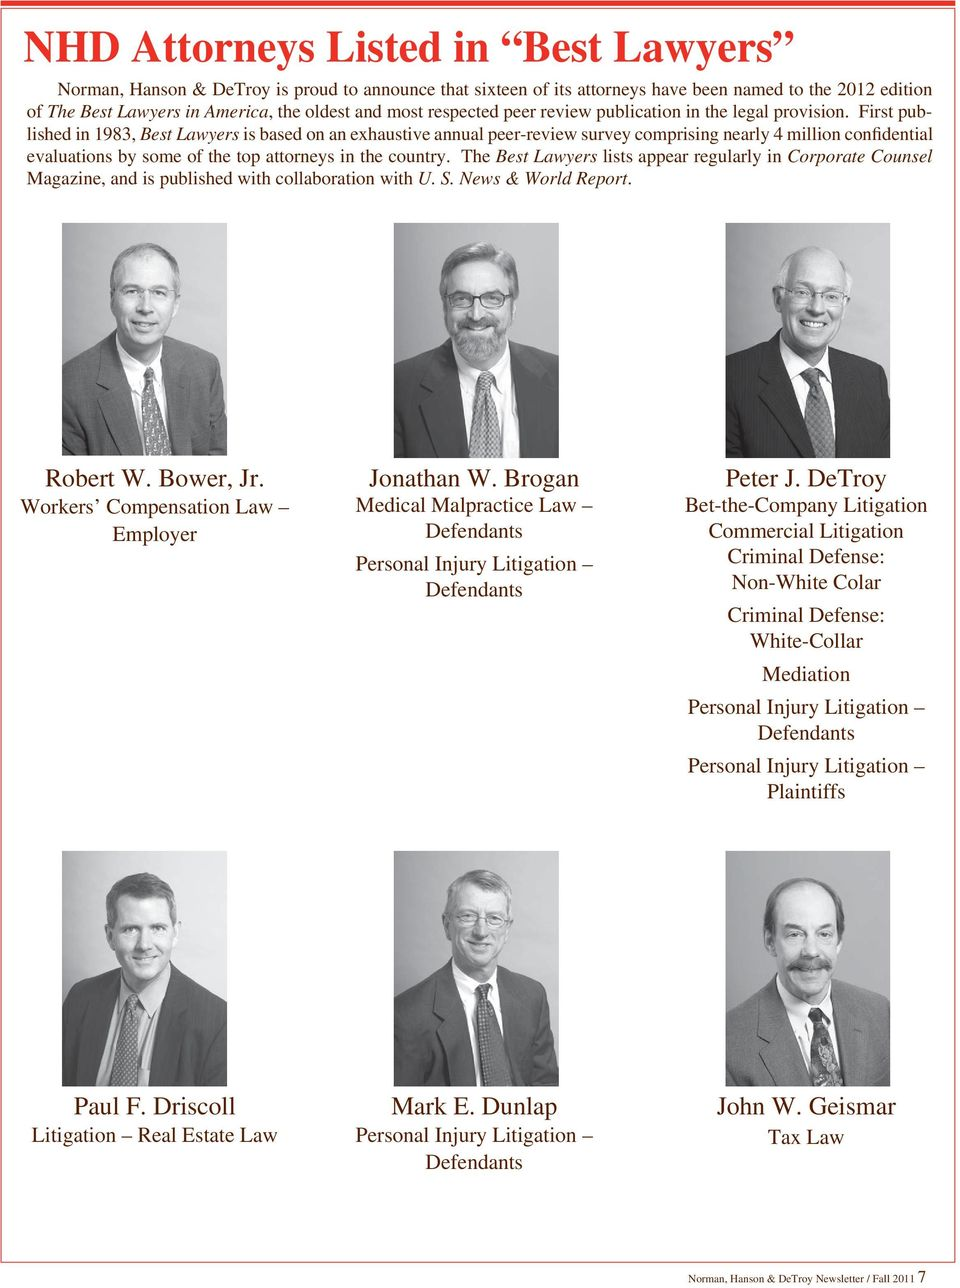 First published in 1983, Best Lawyers is based on an exhaustive annual peer-review survey comprising nearly 4 million confidential evaluations by some of the top attorneys in the country.